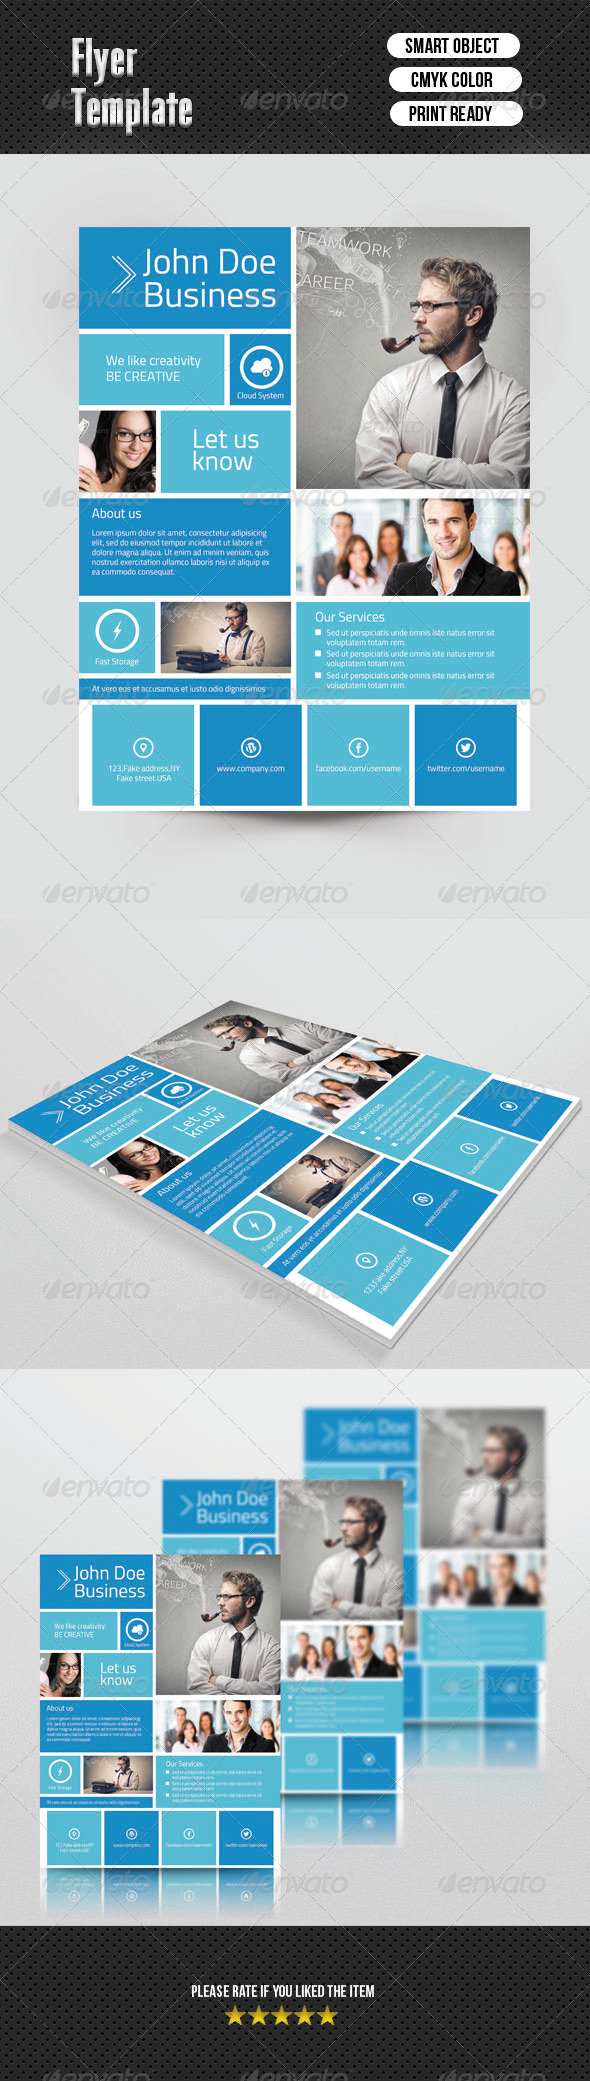 Metro Style Flyer - Corporate Flyers